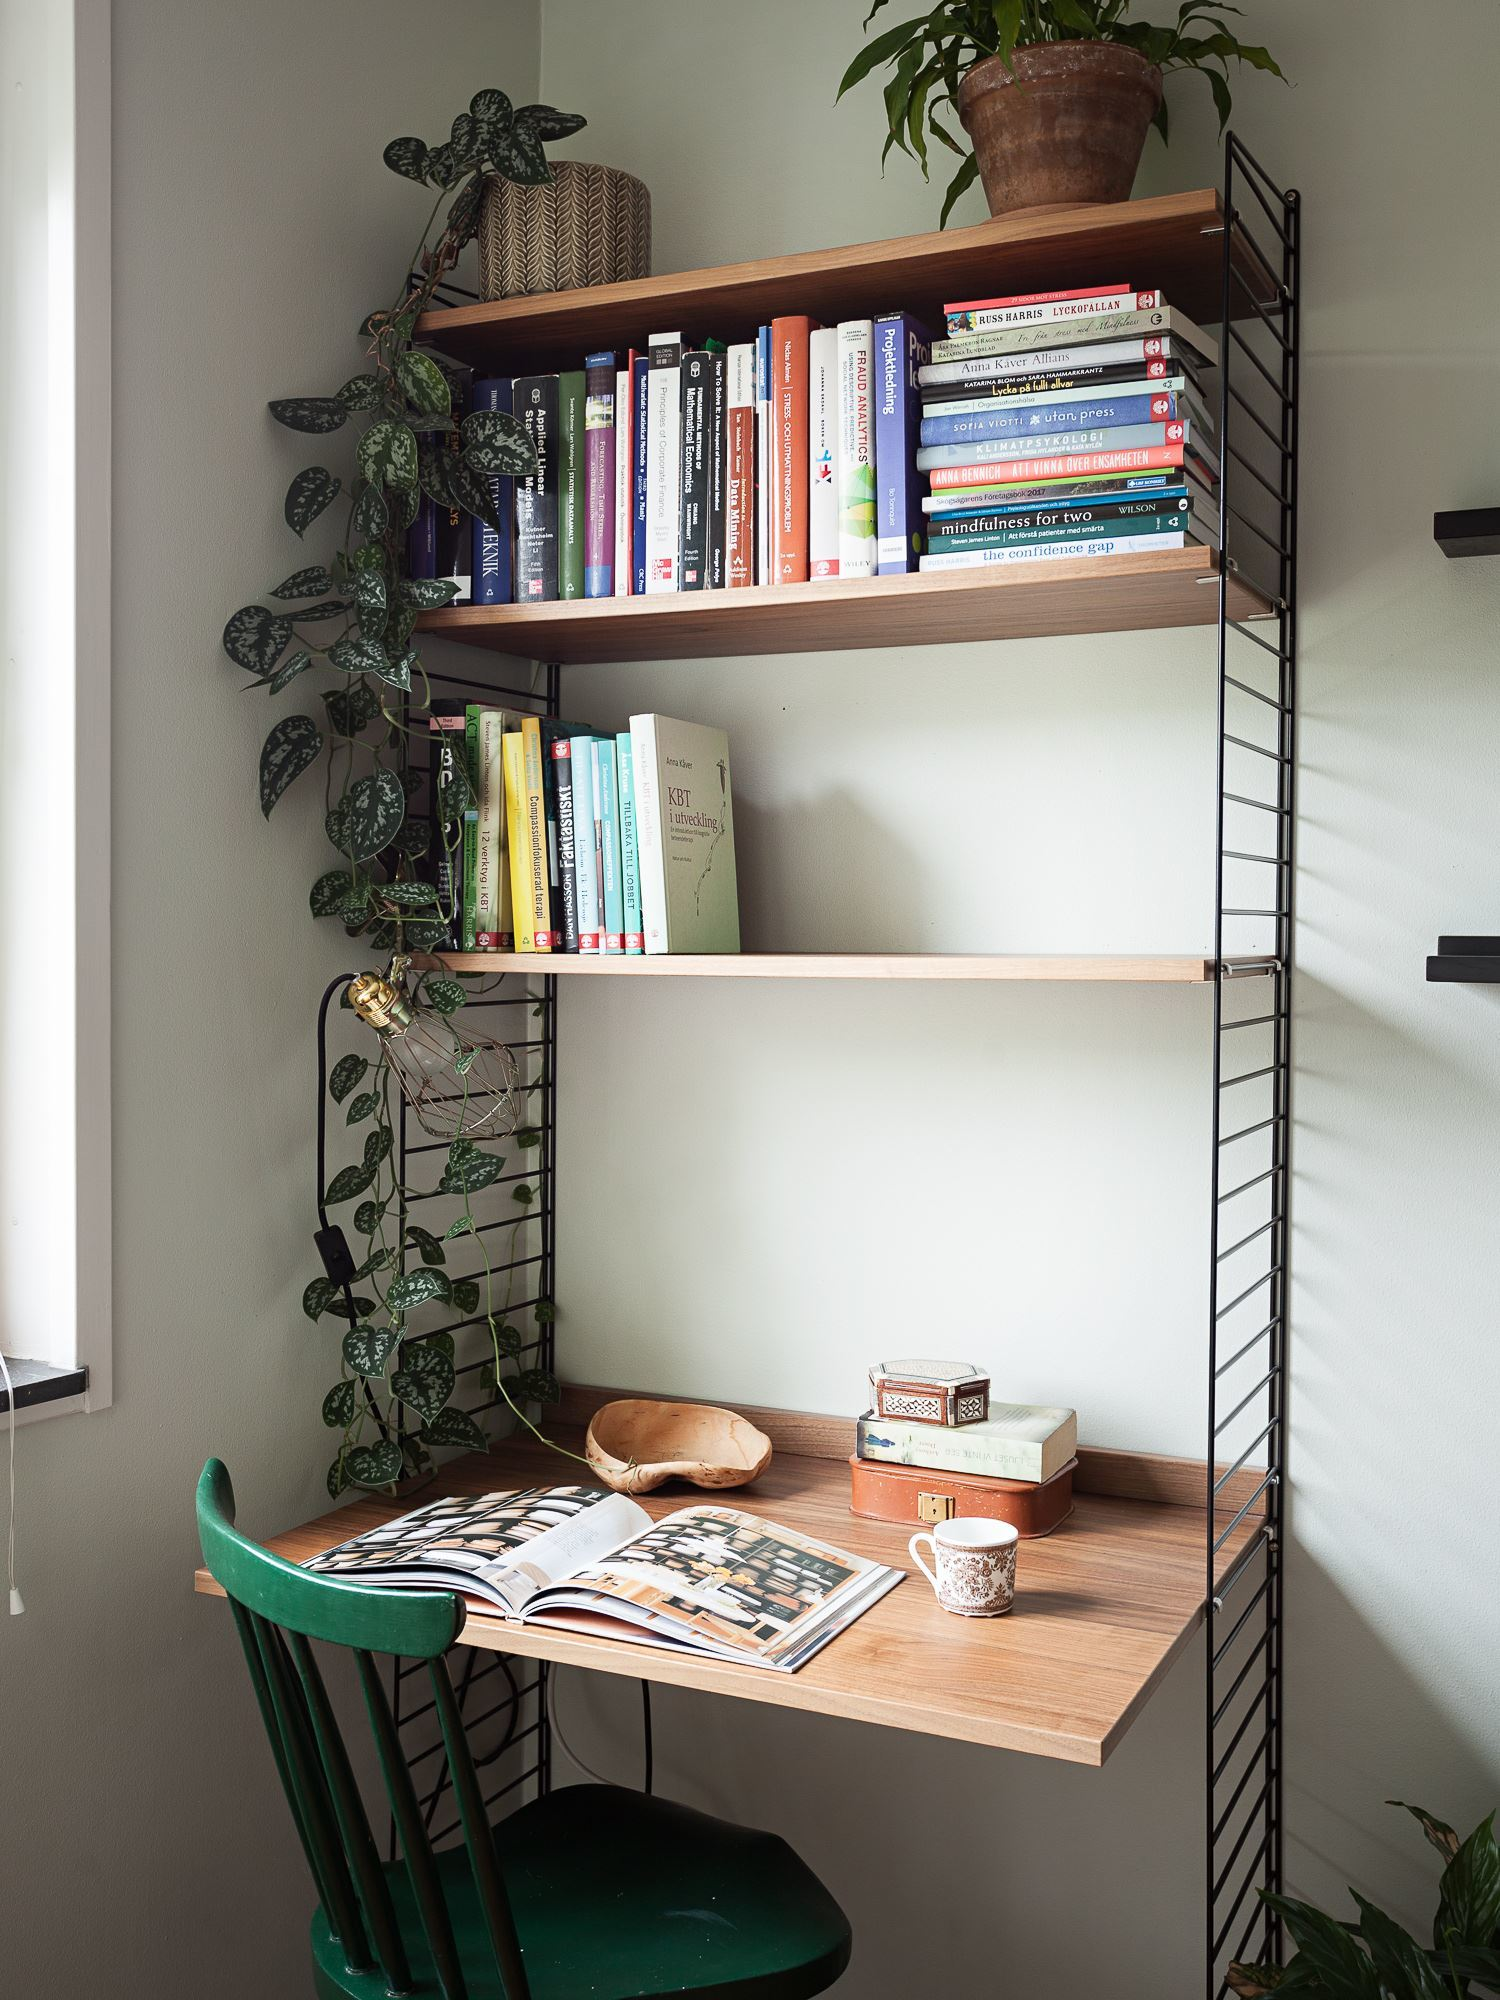 this is a multipurpose home office made with shelves and a desk